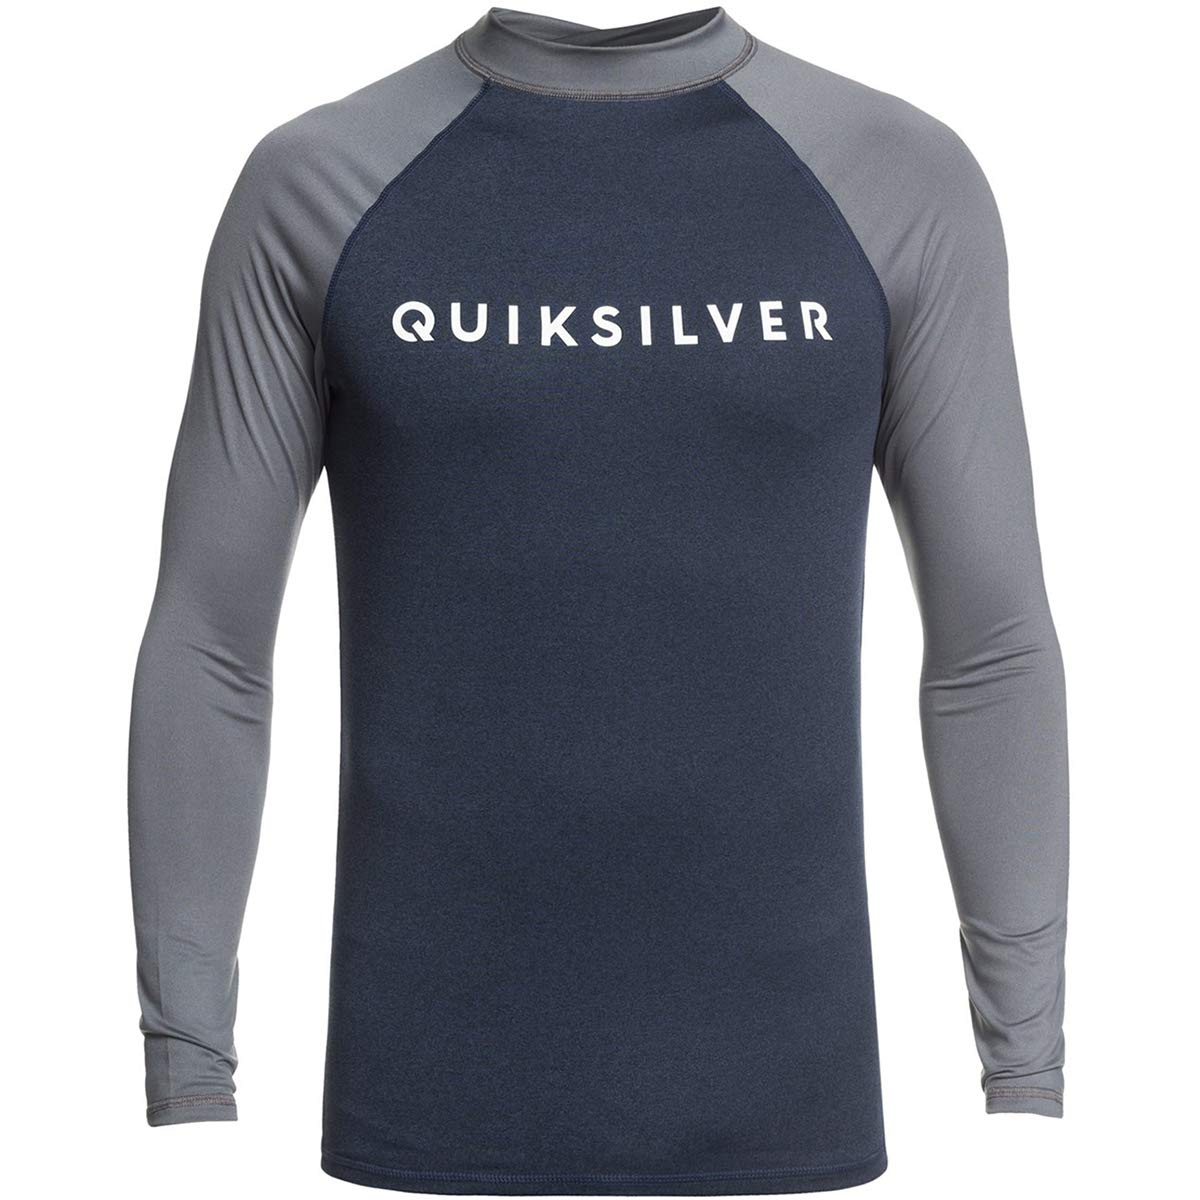 Quiksilver Always There Long Sleeve Rashguard Moonlit Ocean Heather SM by Quiksilver